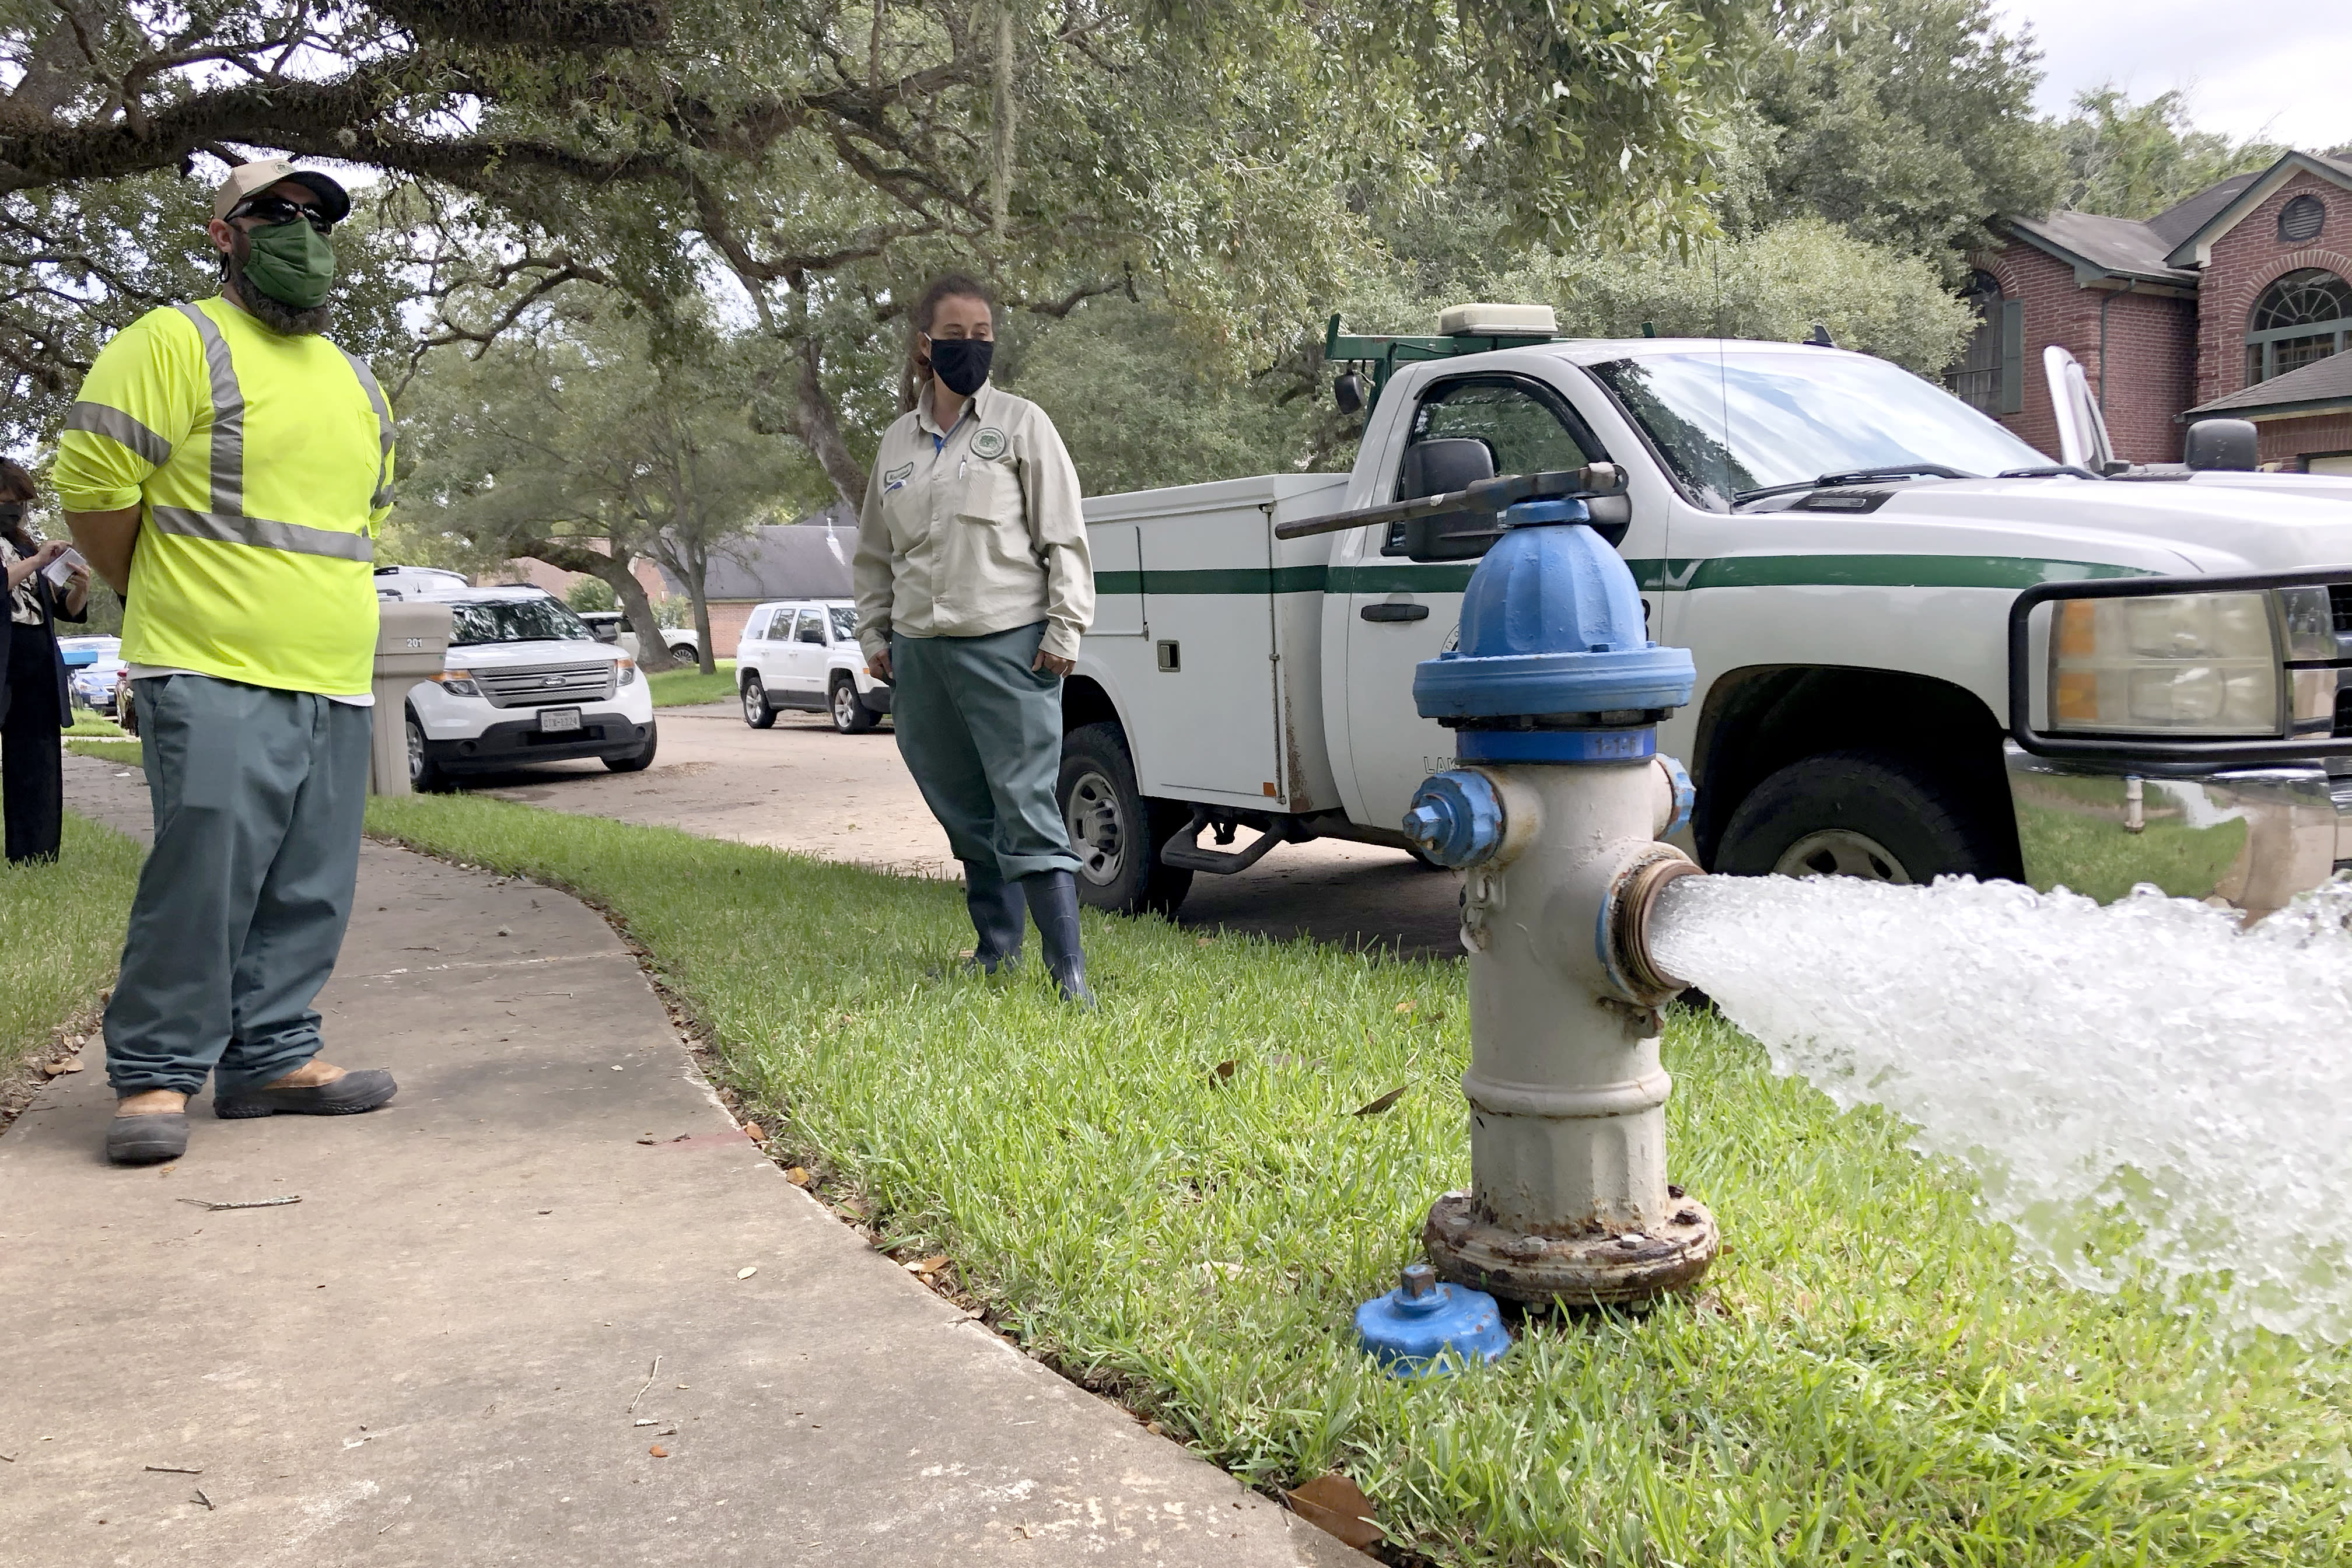 City workers Kristina Watson, right, and Lennie Miner, a maintenance foreman monitor Monday, Sept. 28, 2020, test water flowing out of a hydrant in Lake Jackson, Texas. The city remains under a boil water advisory after a deadly microbe was found to have caused the death of a 6-year-old boy exposed to contaminated water in the city supply. (AP Photo/Jim Mone)